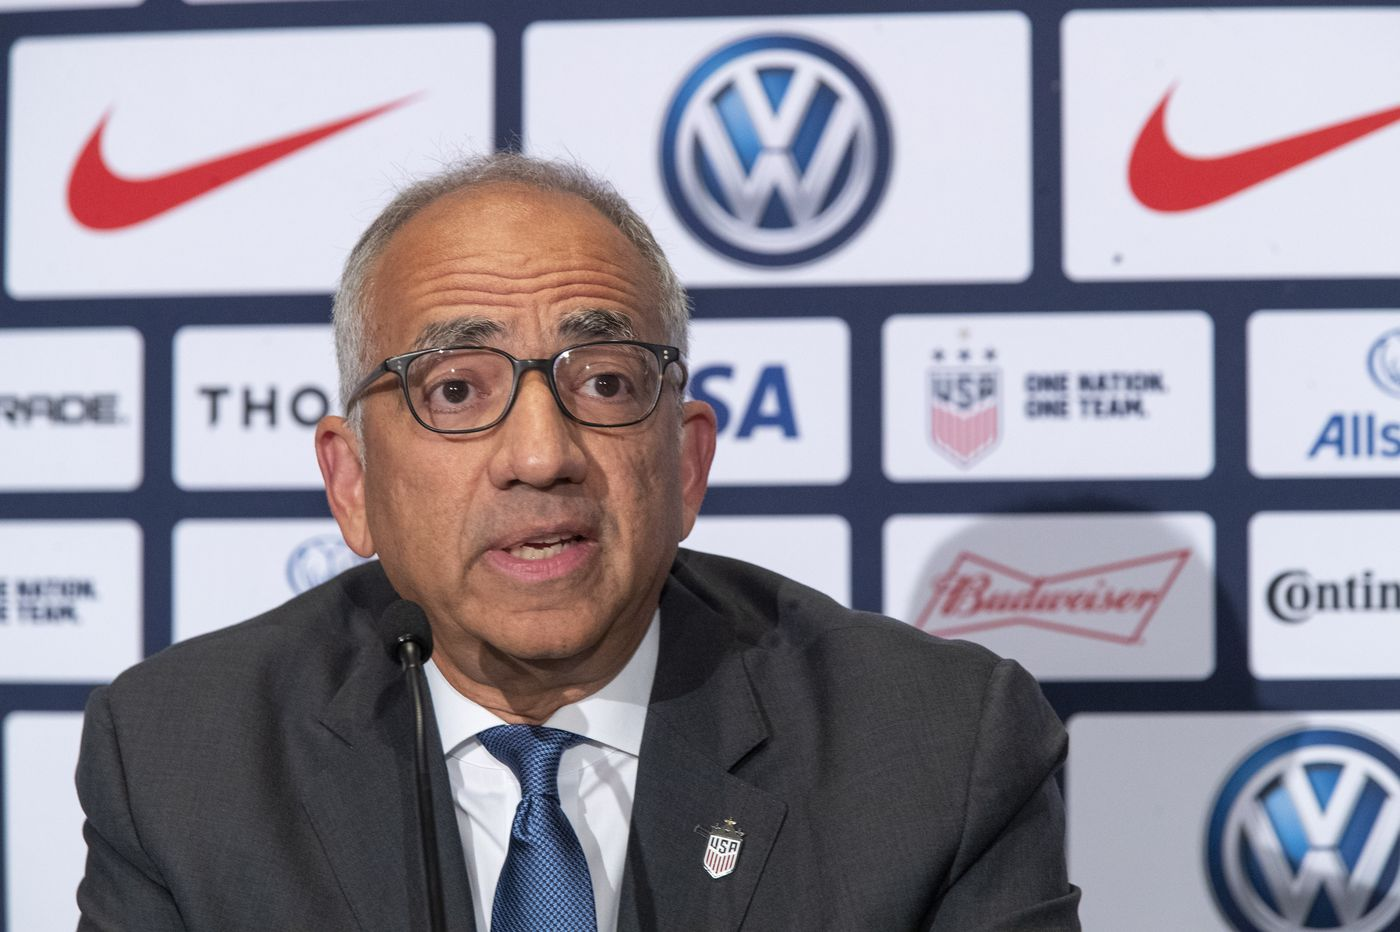 U.S. Soccer president Carlos Cordeiro resigns amid USWNT equal pay lawsuit fiasco